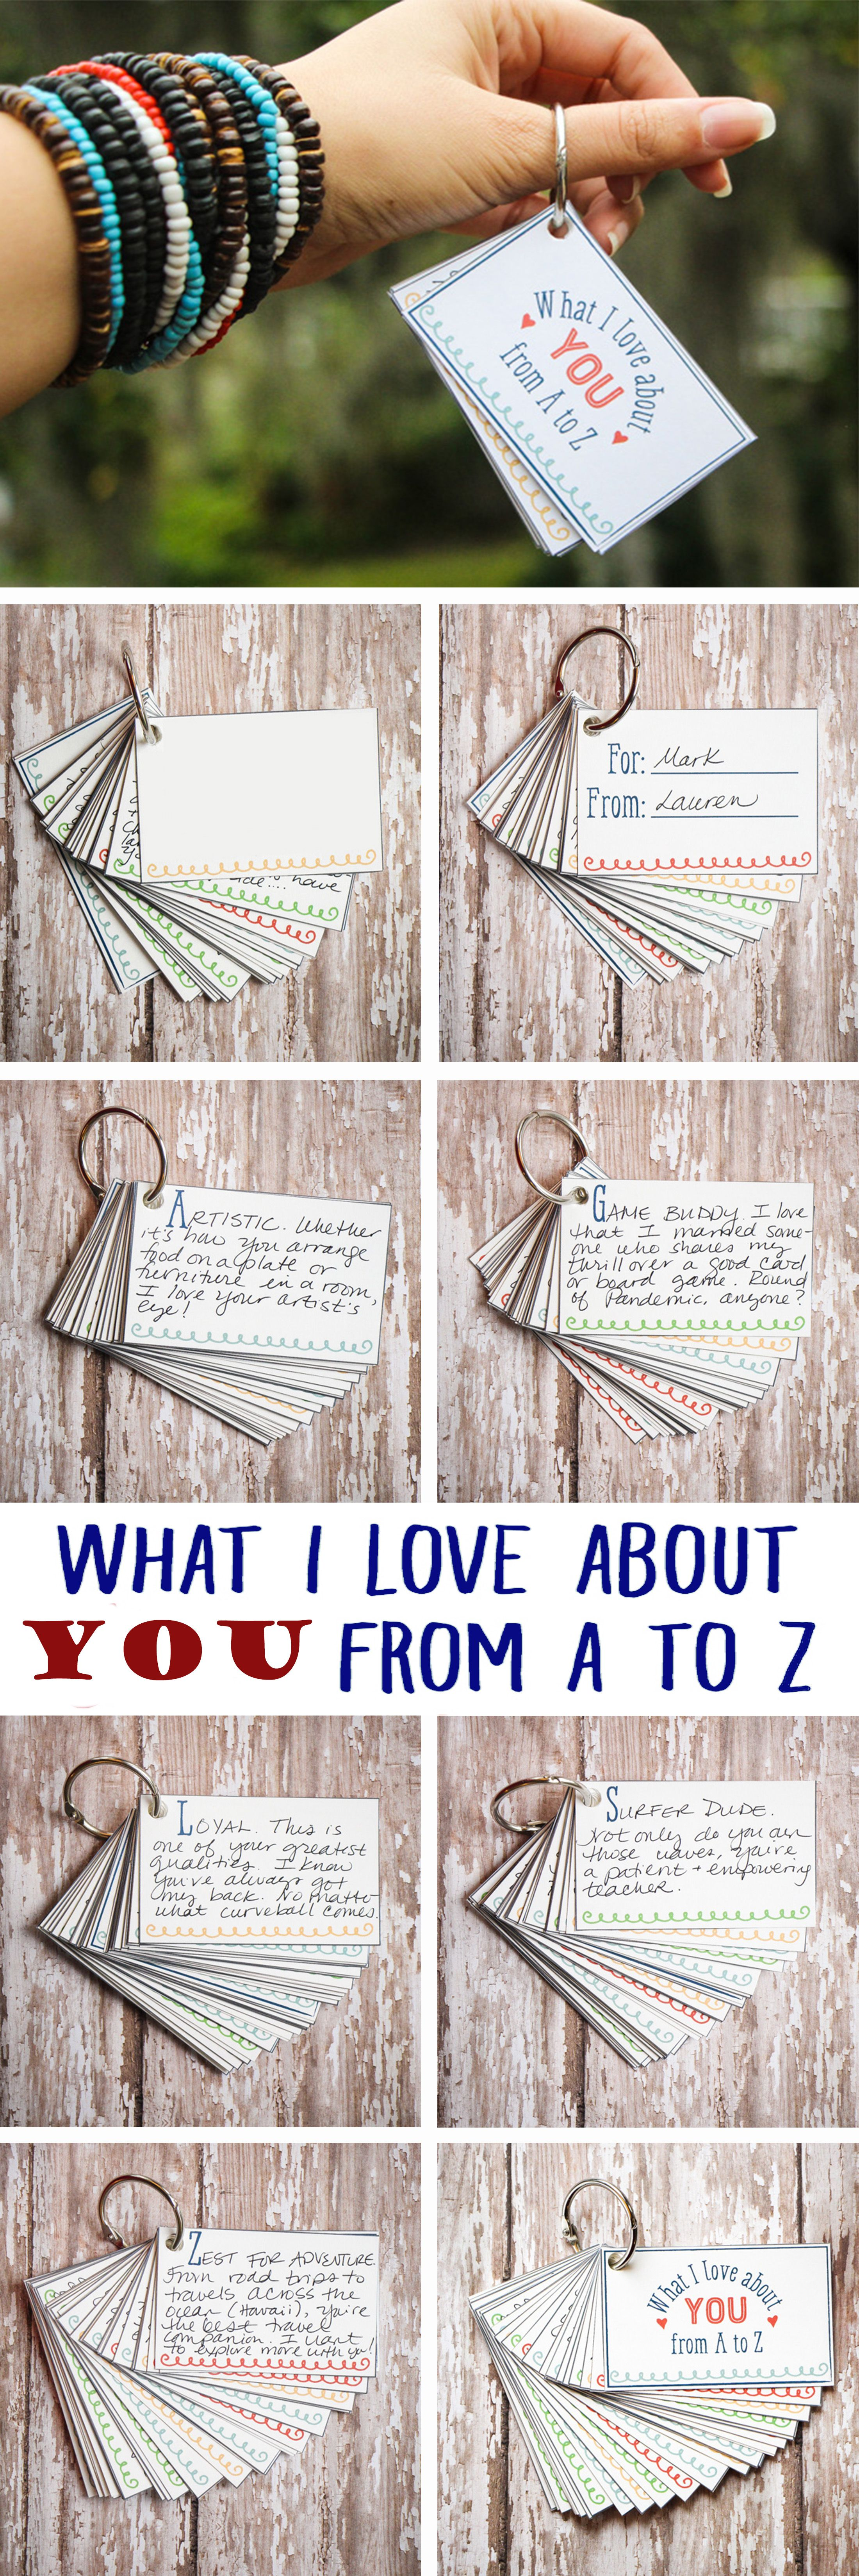 i love about you from a to z mini-book | boyfriend gift ideas | diy